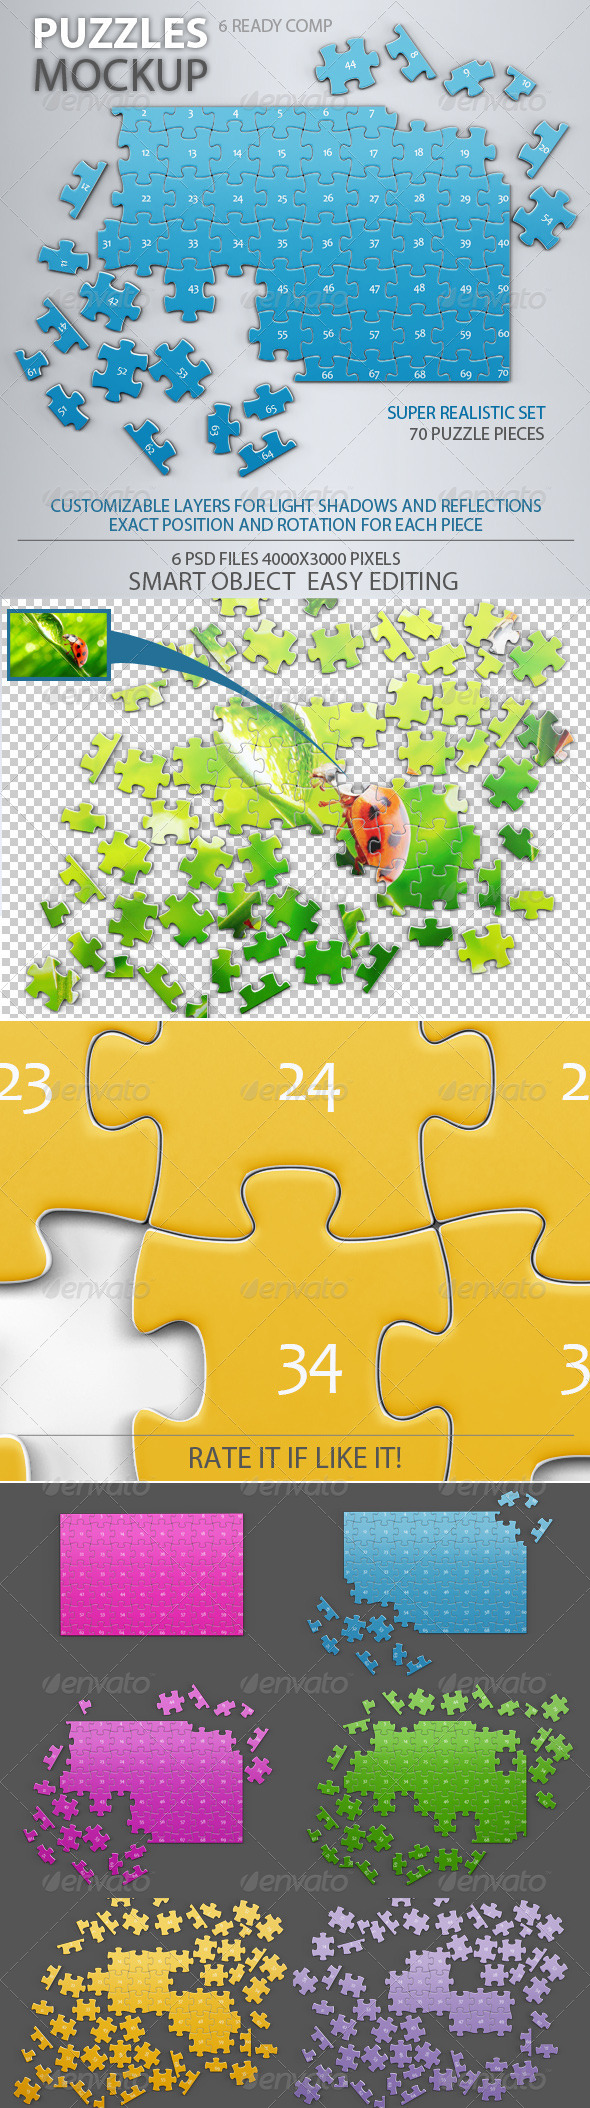 GraphicRiver Puzzles 70 Pieces Mock-up 7789991